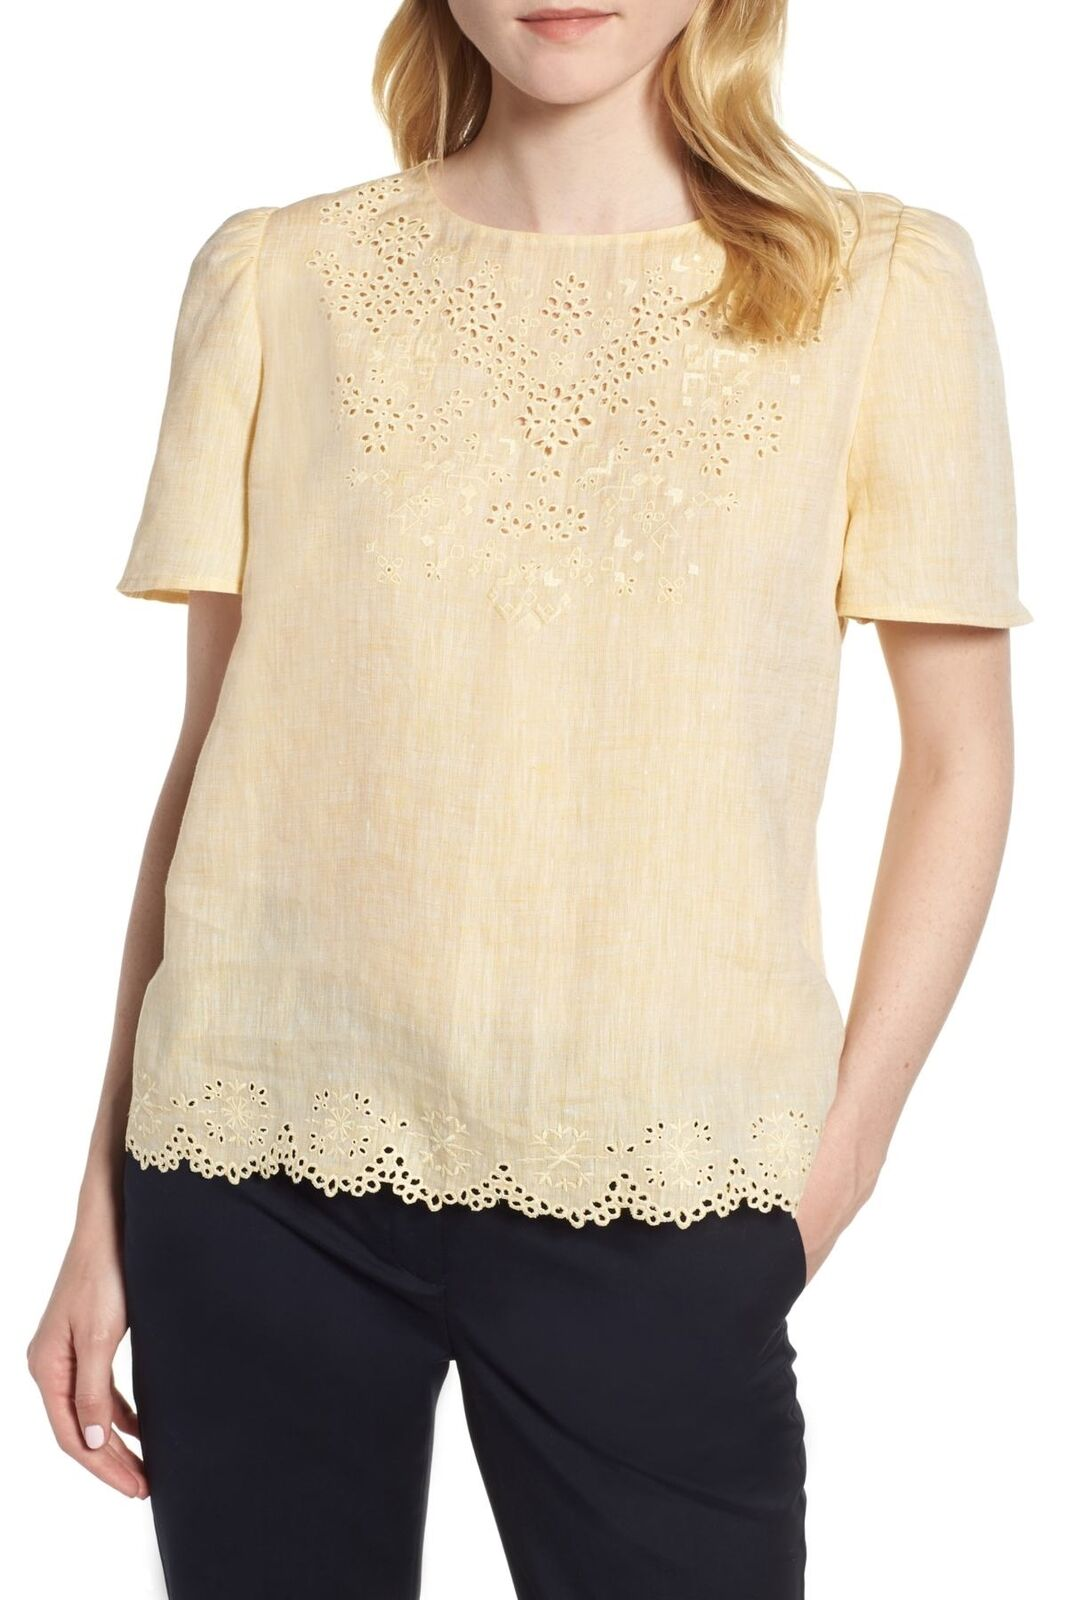 Nordstrom Signature 153388 Women's Embroidered Eyelet Top Yellow Sz. Small